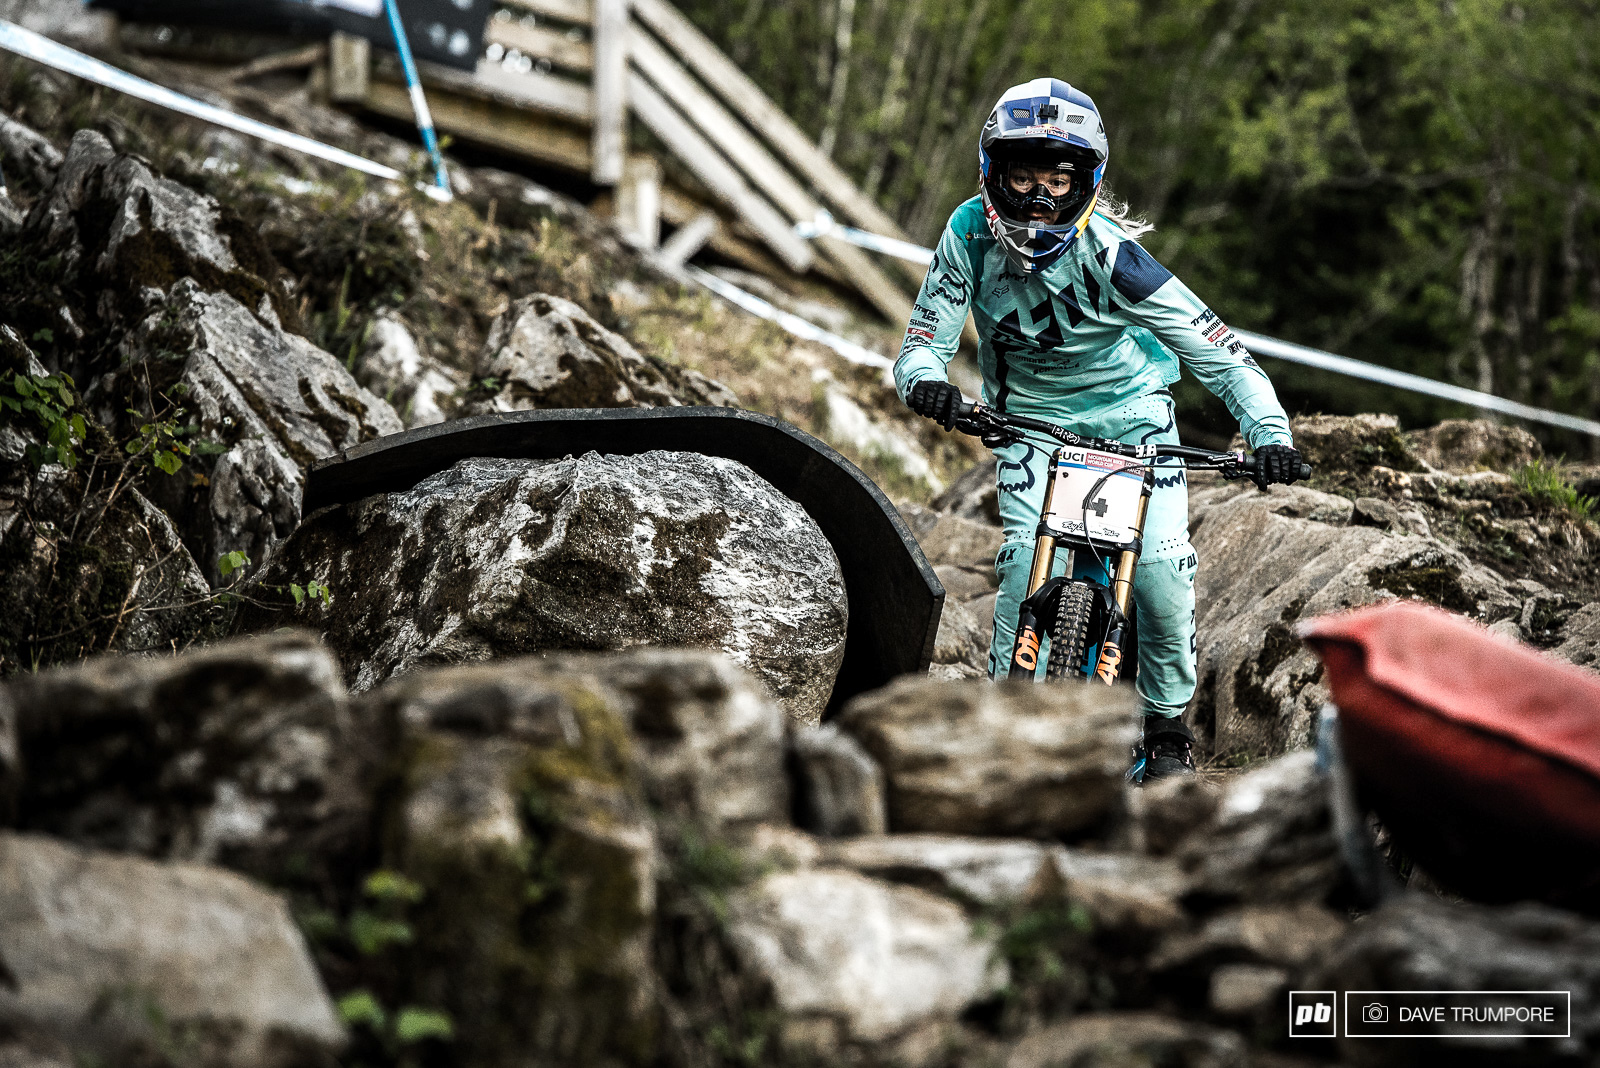 Tahnee has been saying all off season that she wants to beat Rachel Atherton and end the winning streak and today she got one step closer to that goal.